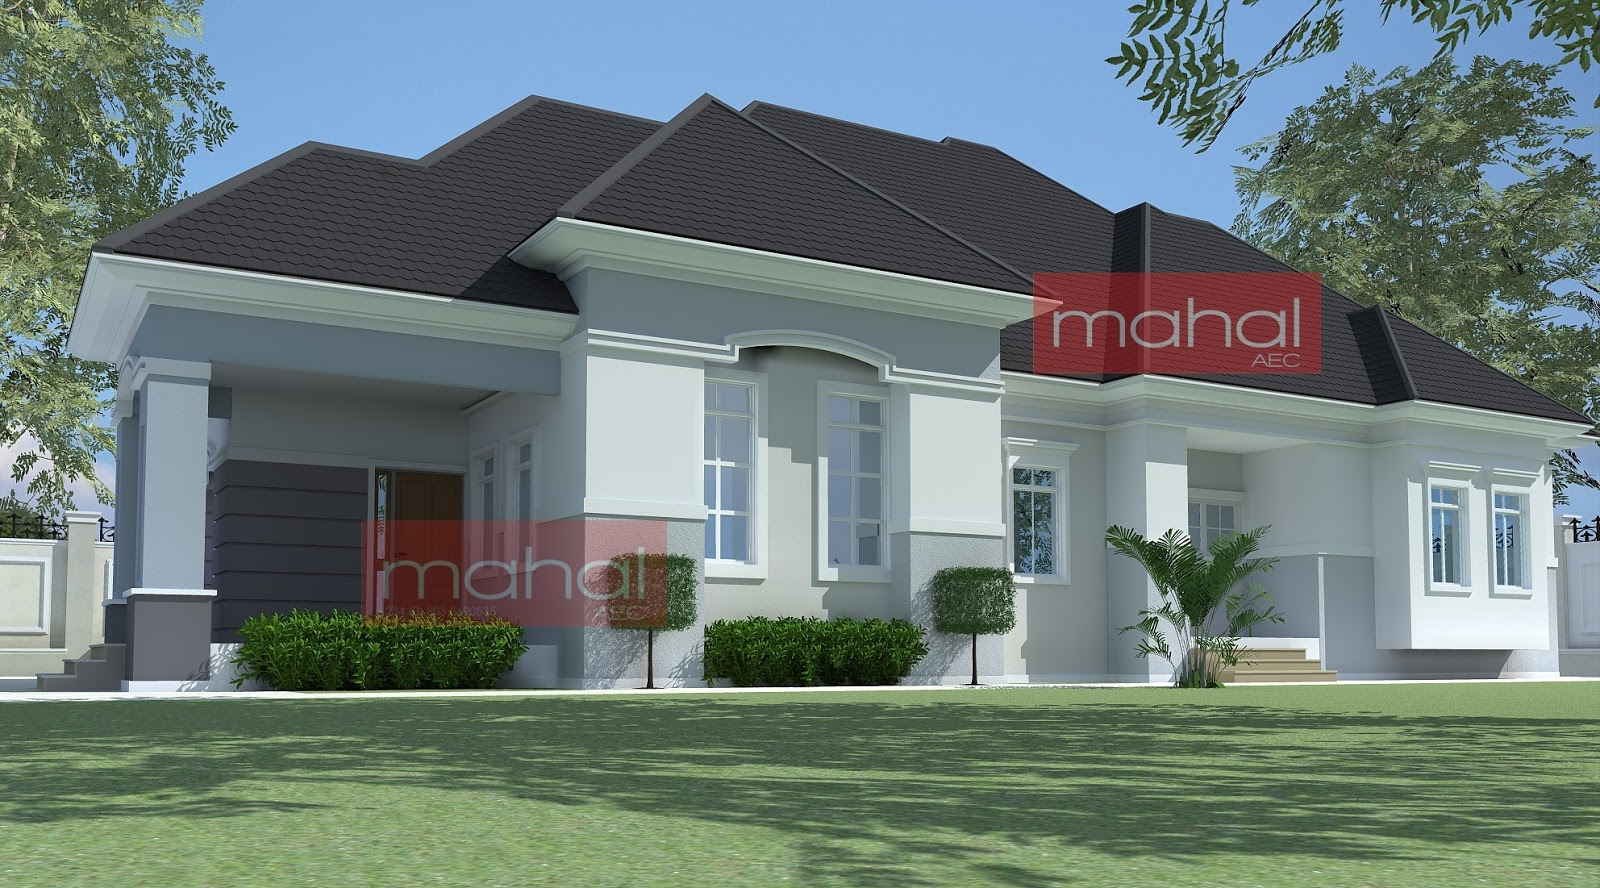 4 bedroom bungalow house plans nigerian design 4 bedroom for 1 story brick house plans